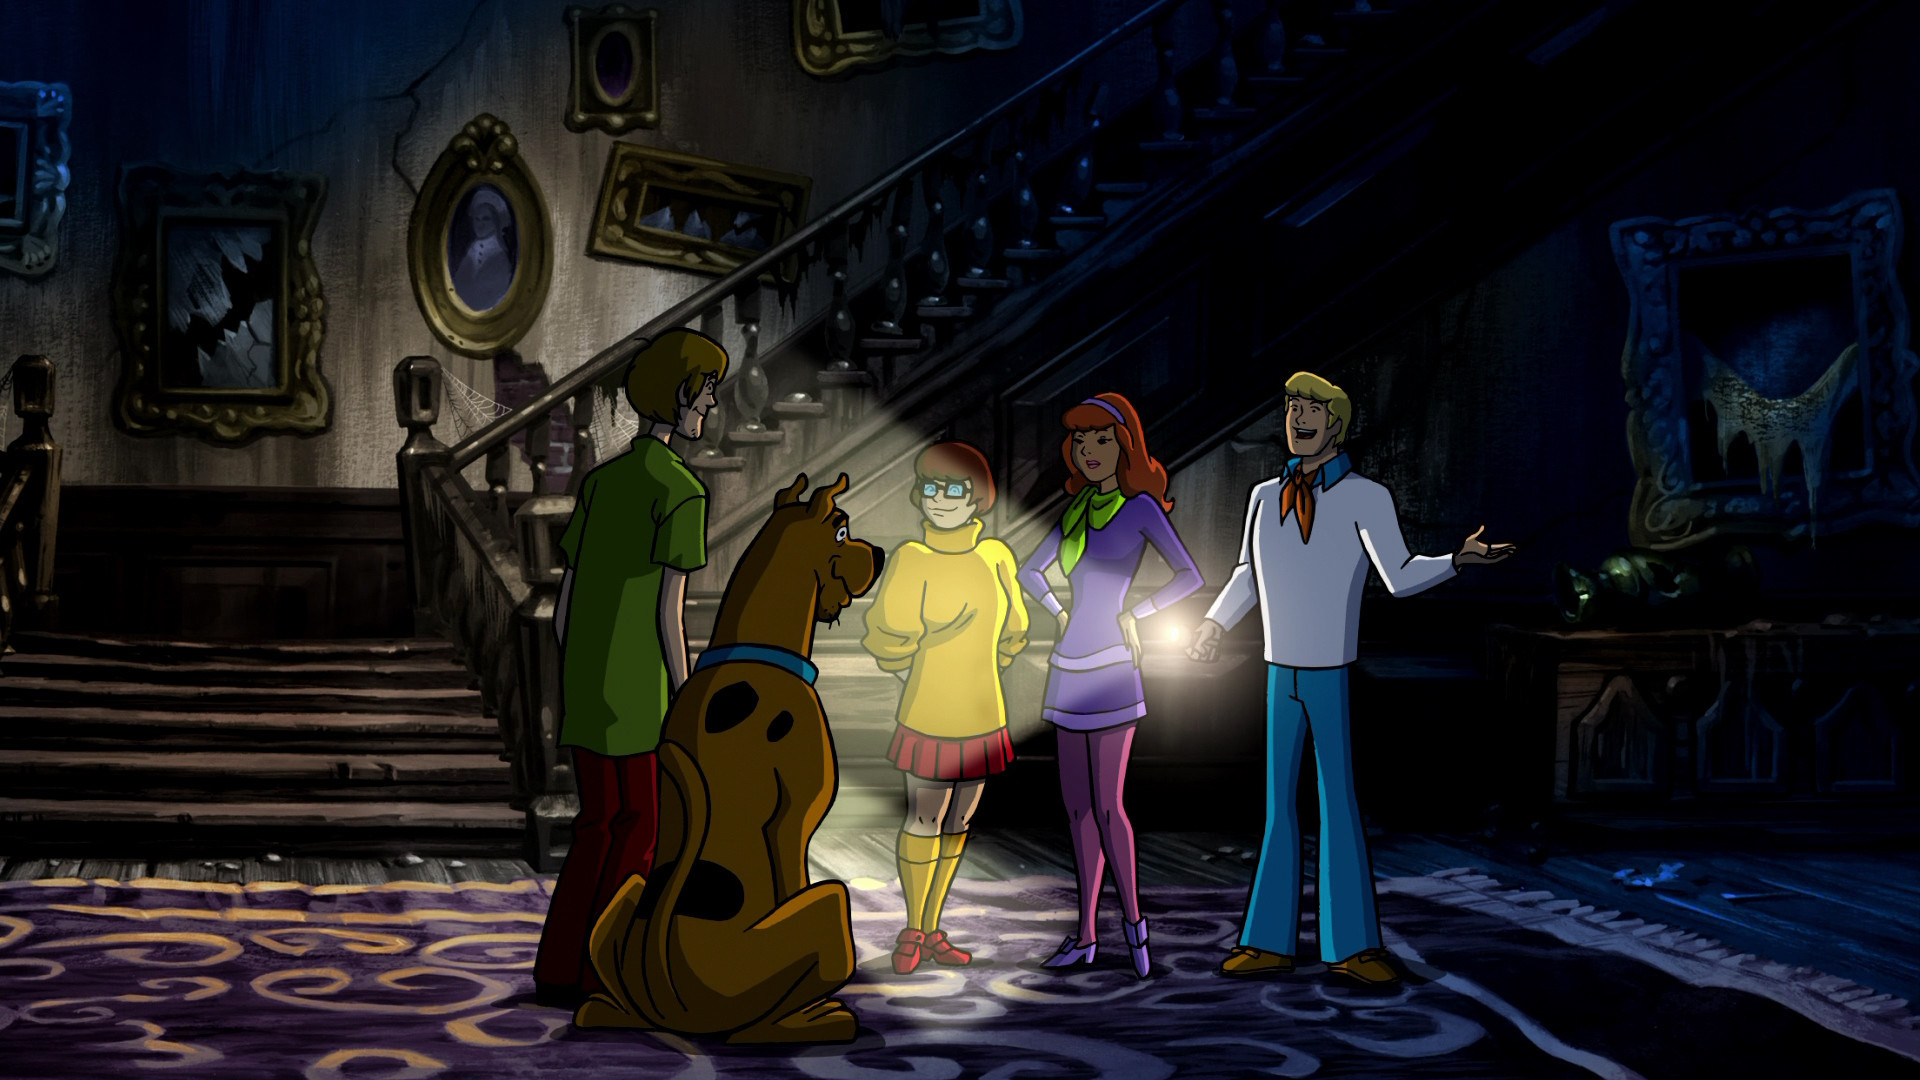 1920x1080 Download Scooby Doo Photo Free.